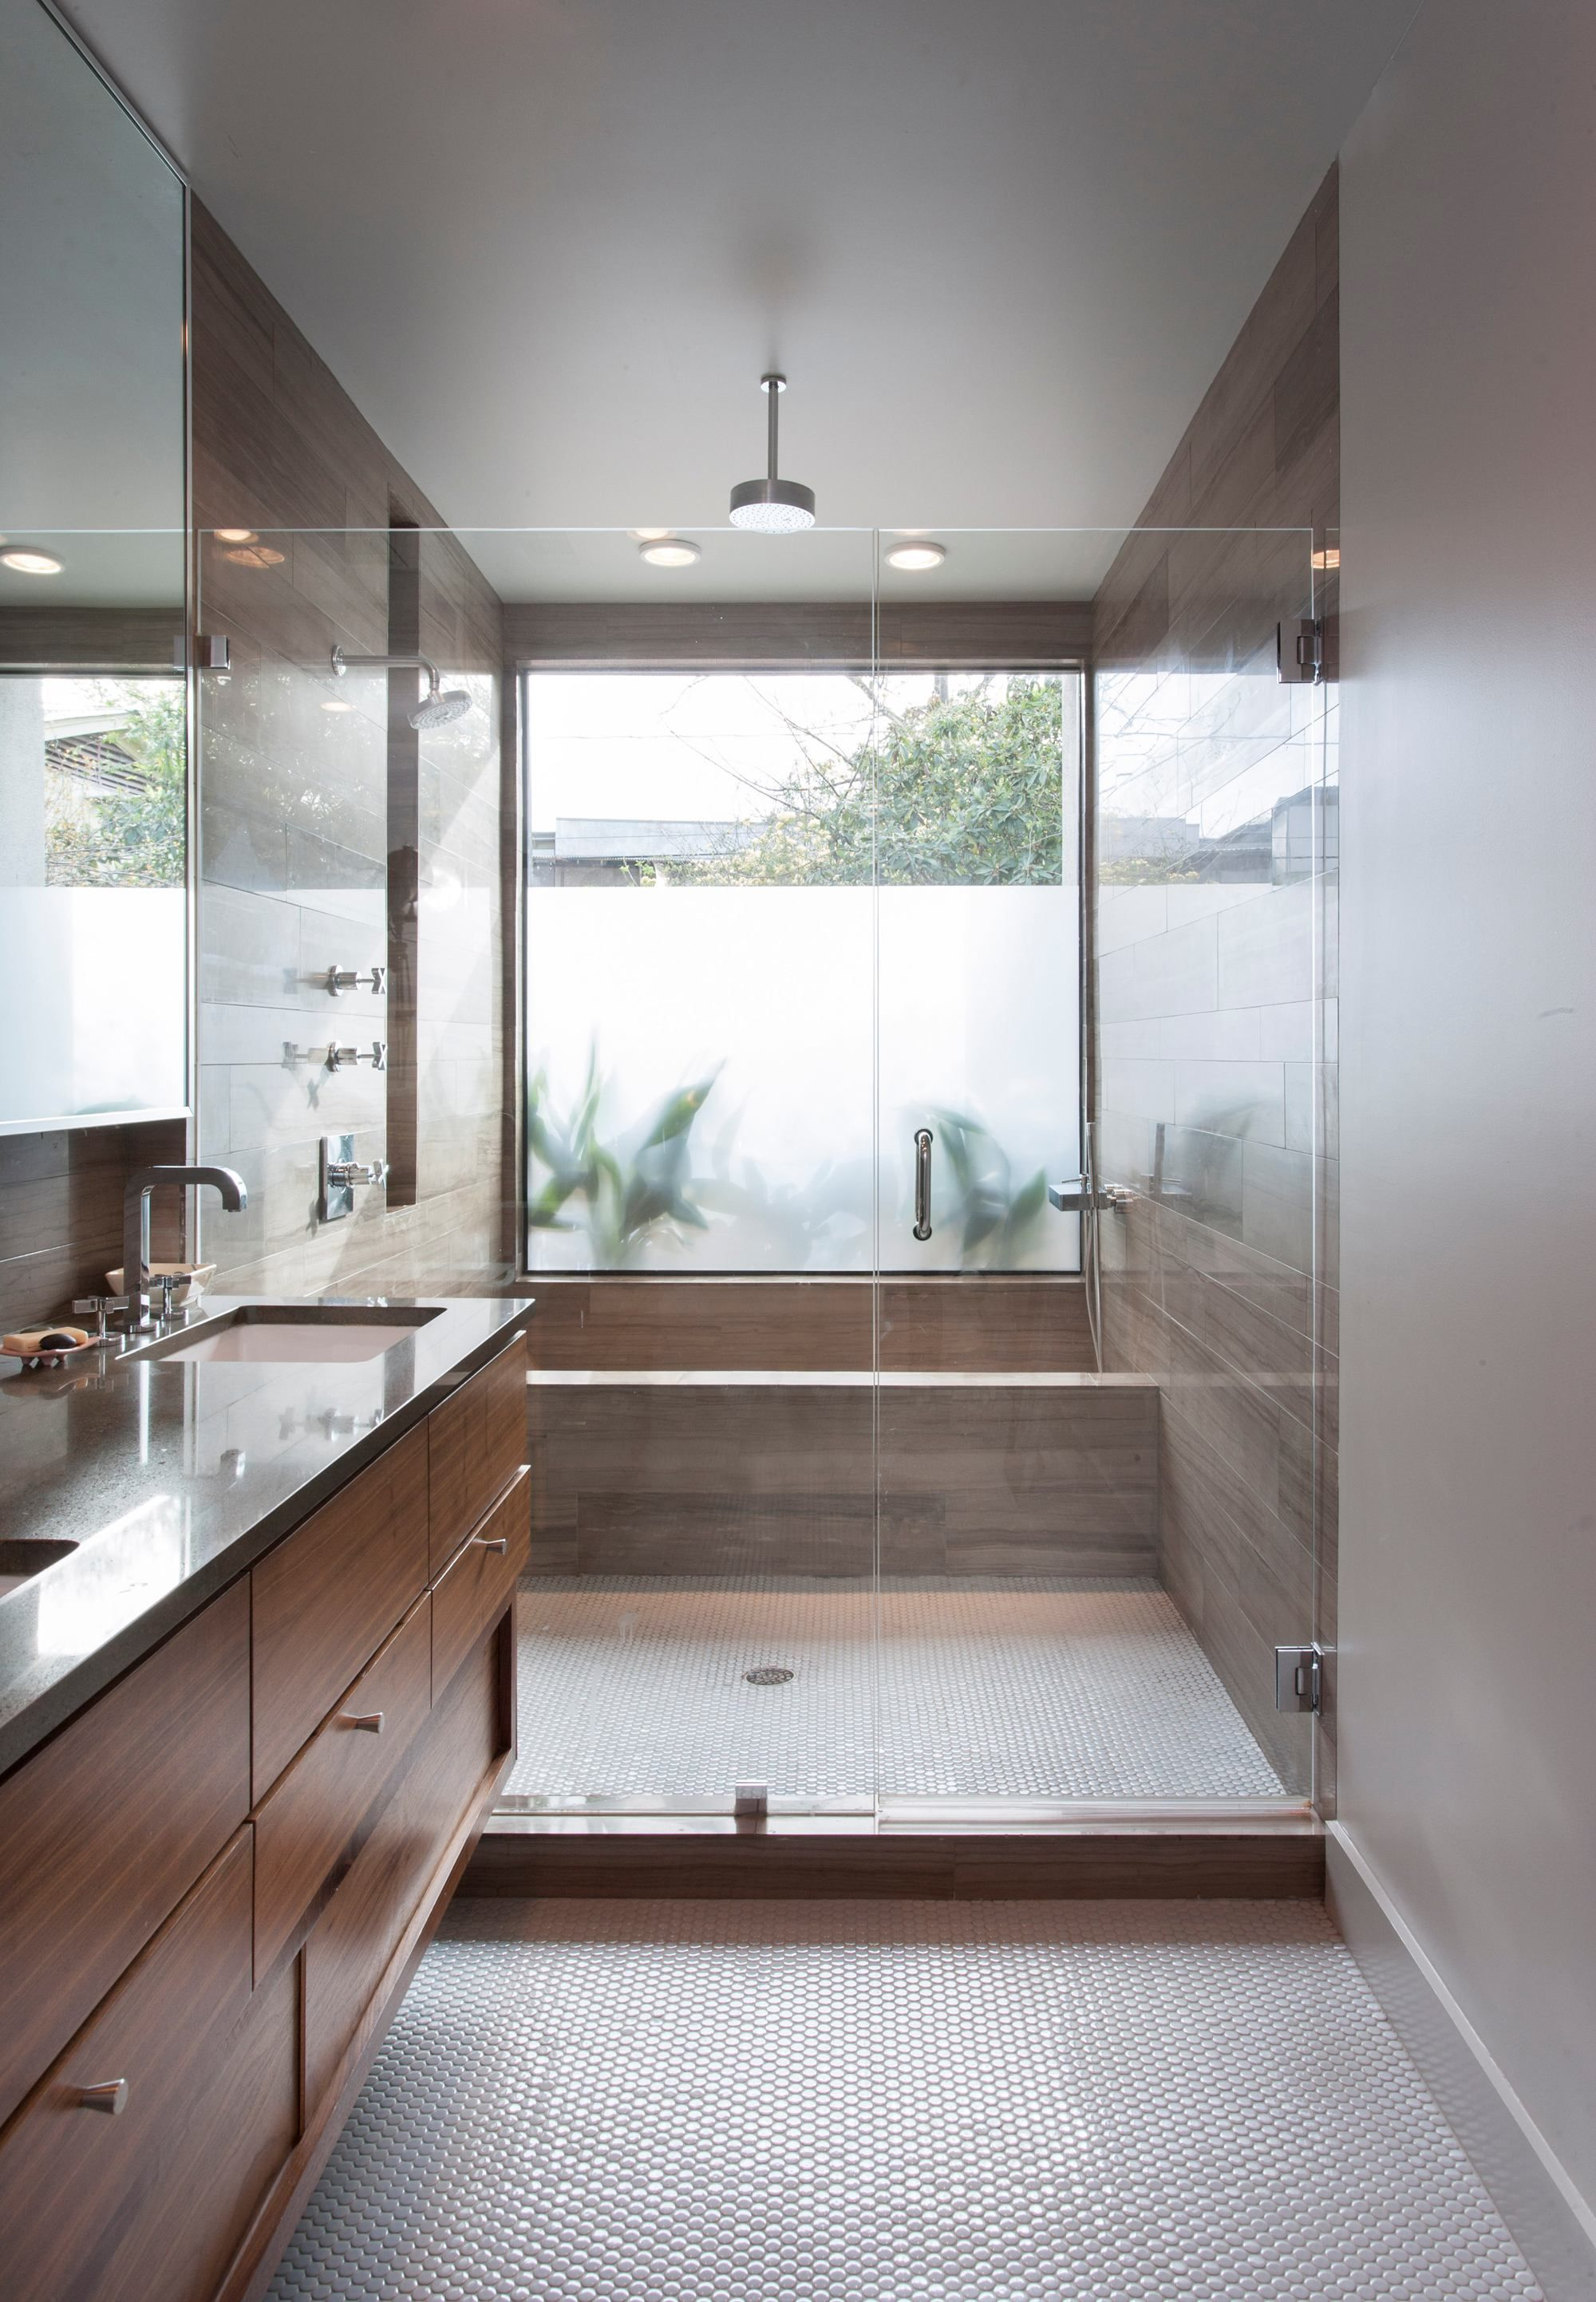 2013 Bath Room Winner Features A Neat Twist On The Oversized Shower Wet Room Idea Here The